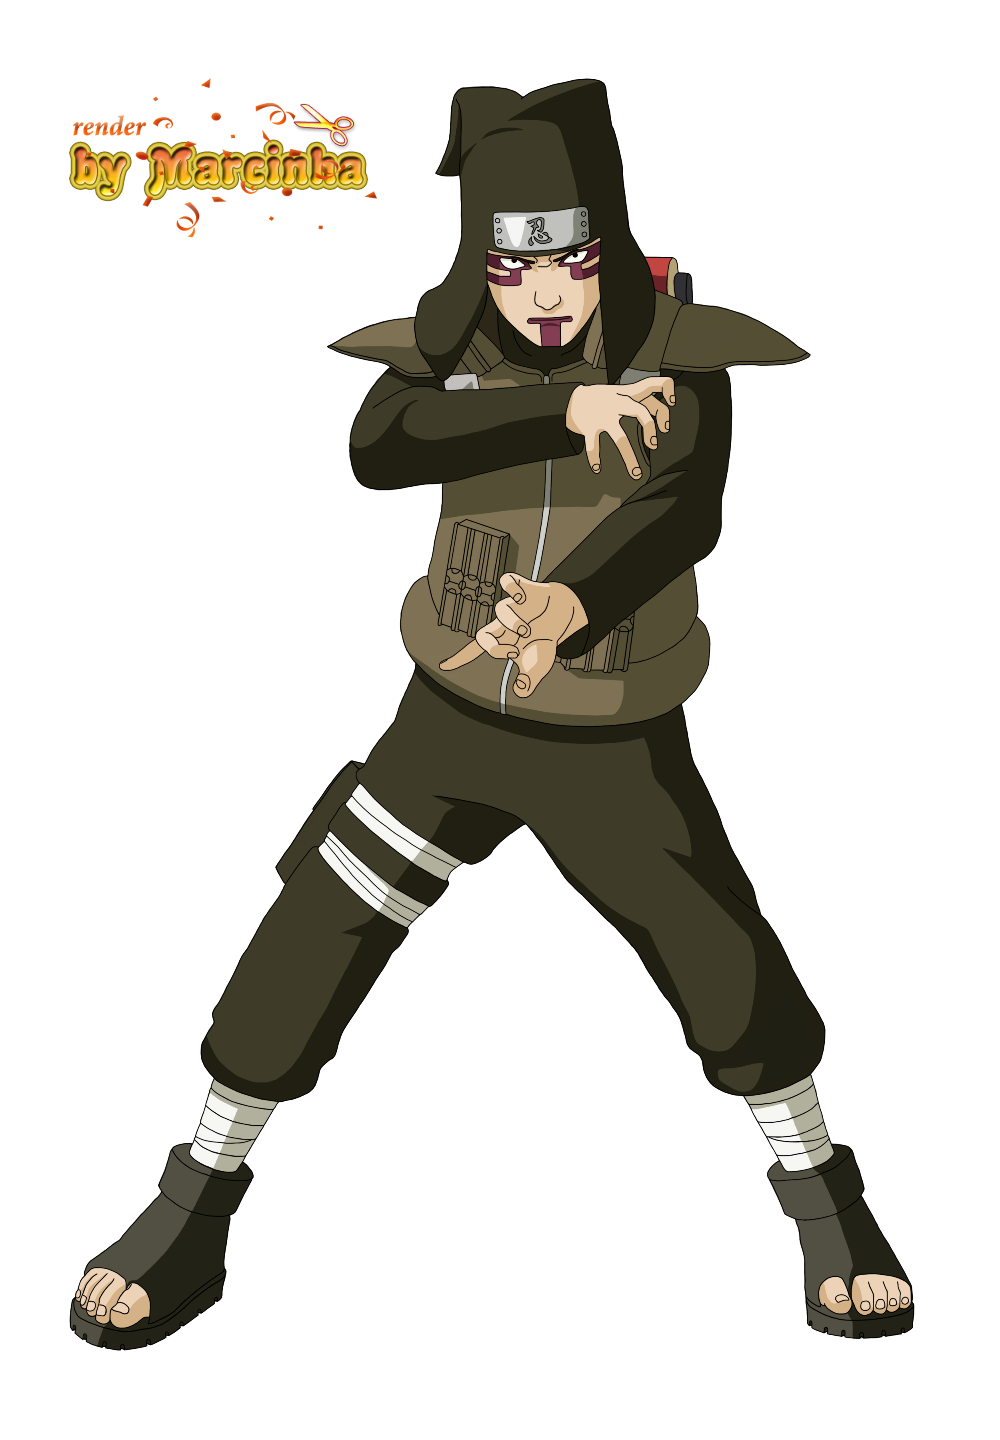 Pin by James Quevedo on Naruto characters in 2020 Naruto